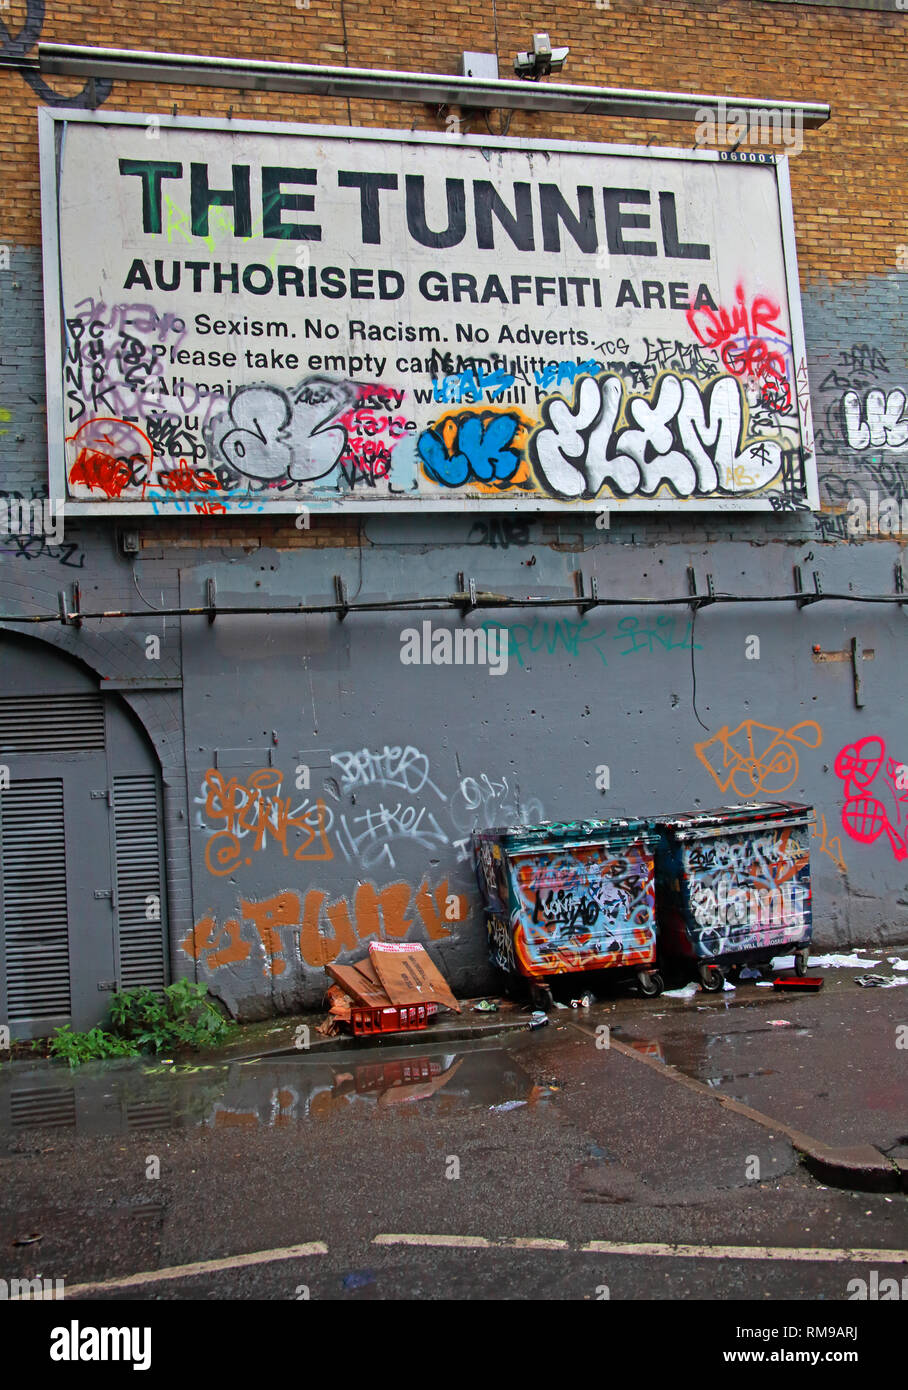 The Tunnel, Authorised Graffiti Area, Leake Street, Waterloo, Lambeth, London, South East England, UK, SE1 7NN - Stock Image